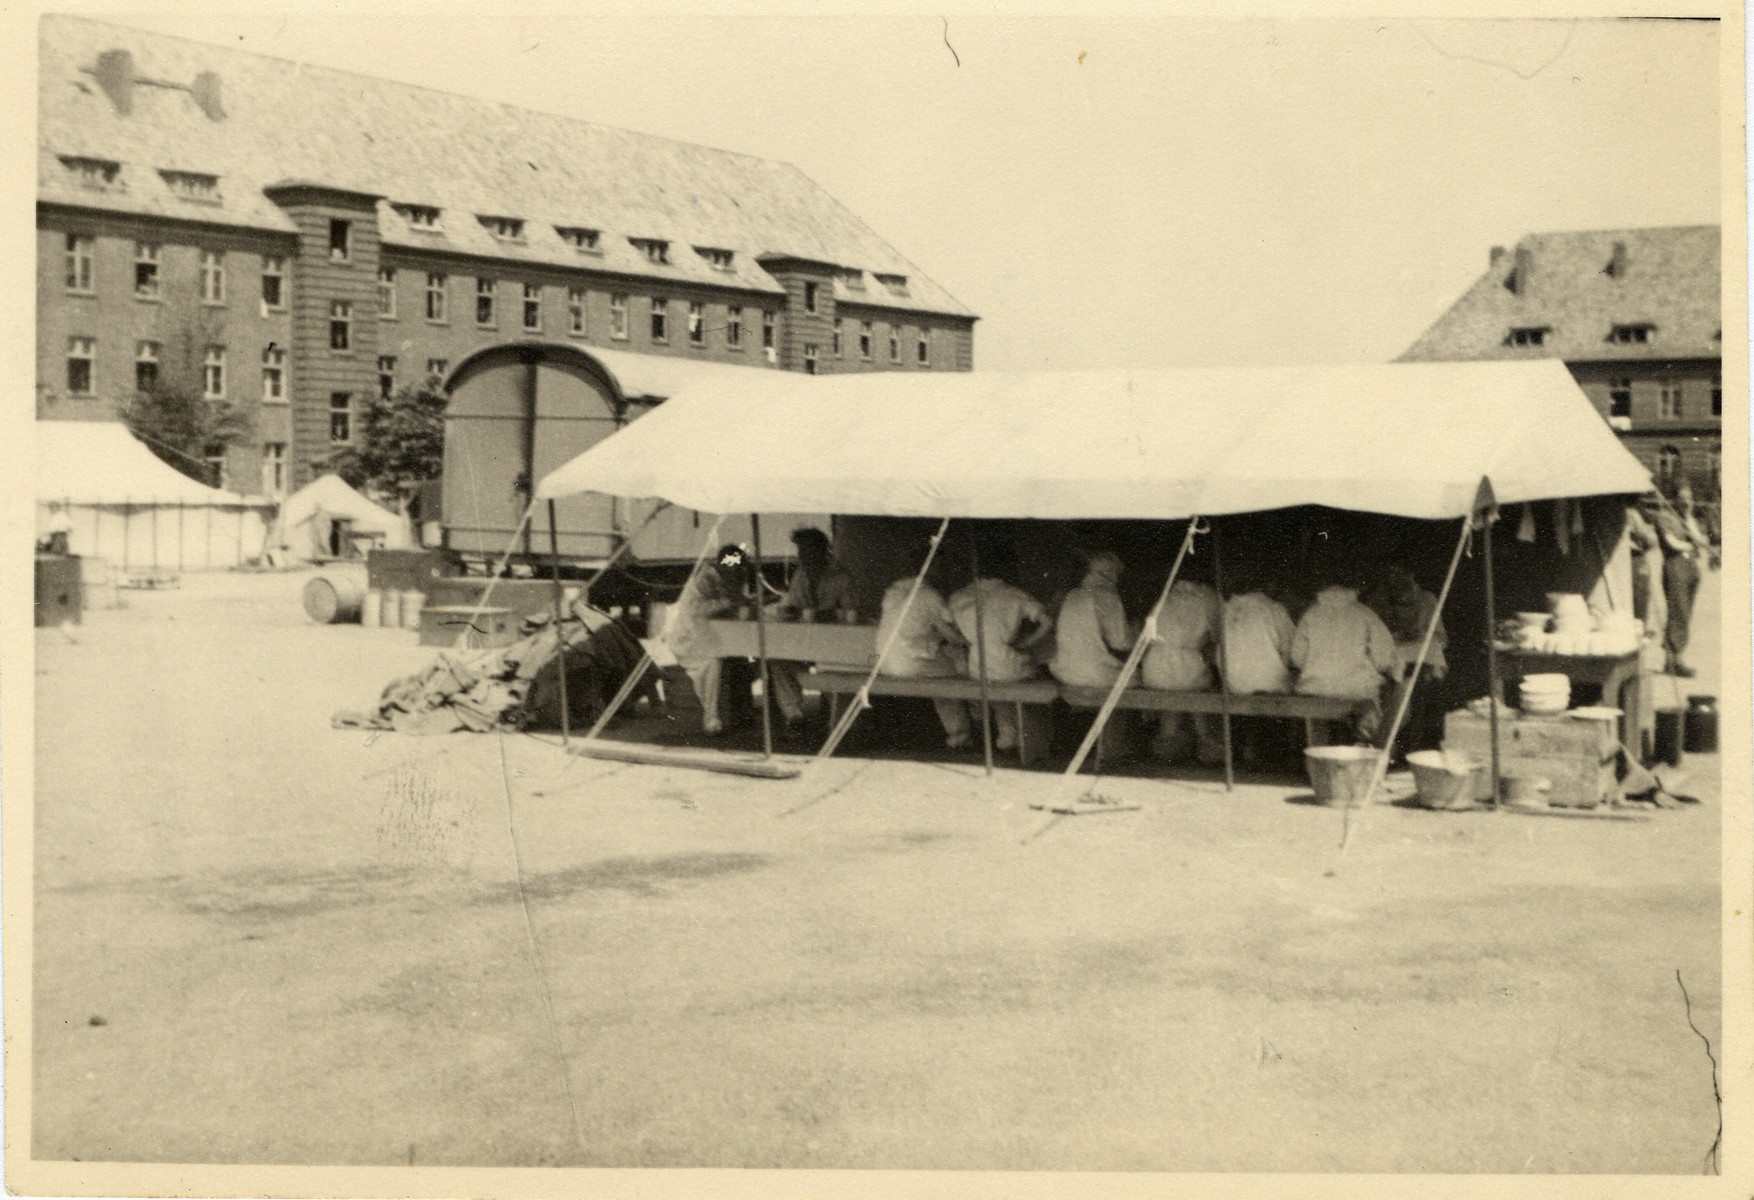 A group of people gather for a meal under a tent in Luebeck.